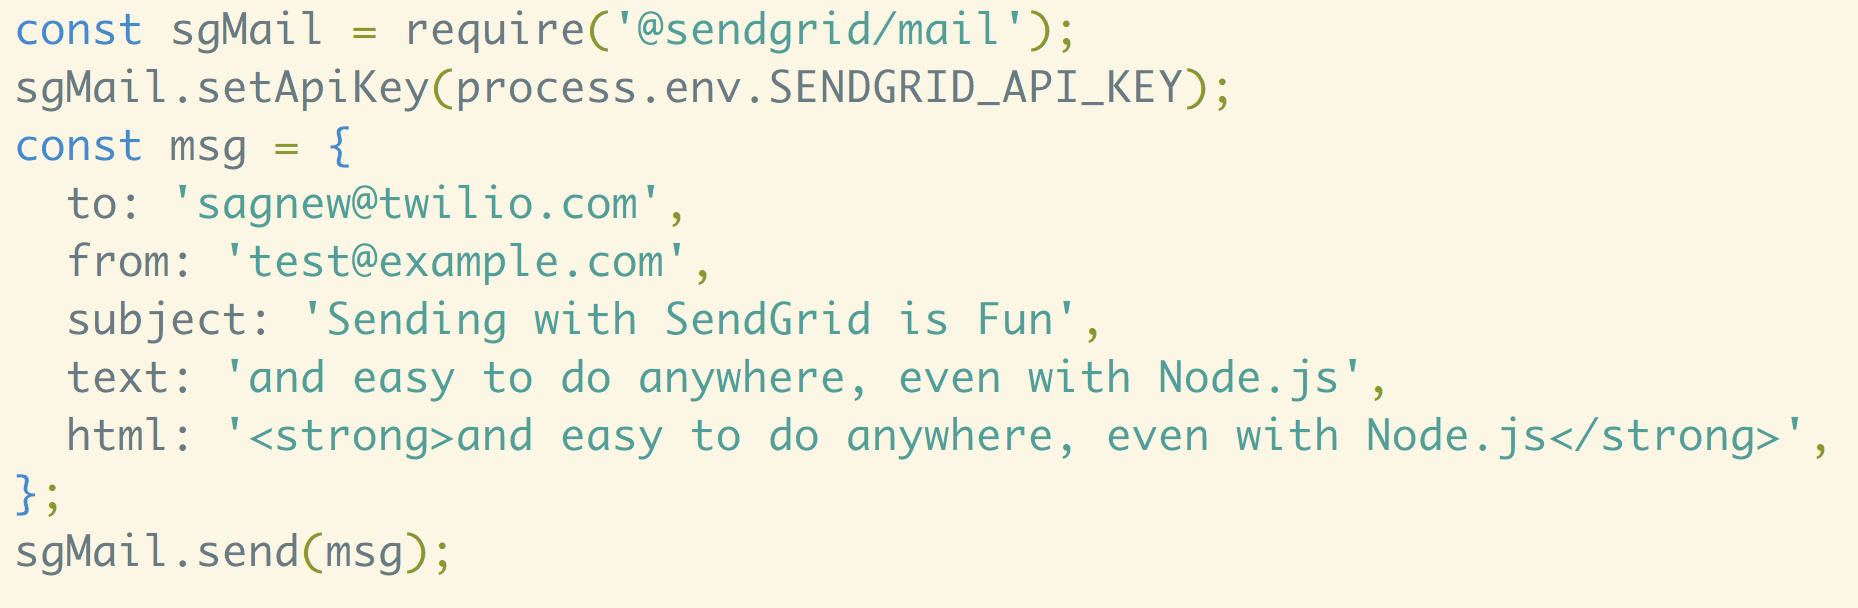 How to Send Emails in JavaScript/Node js with SendGrid - Twilio